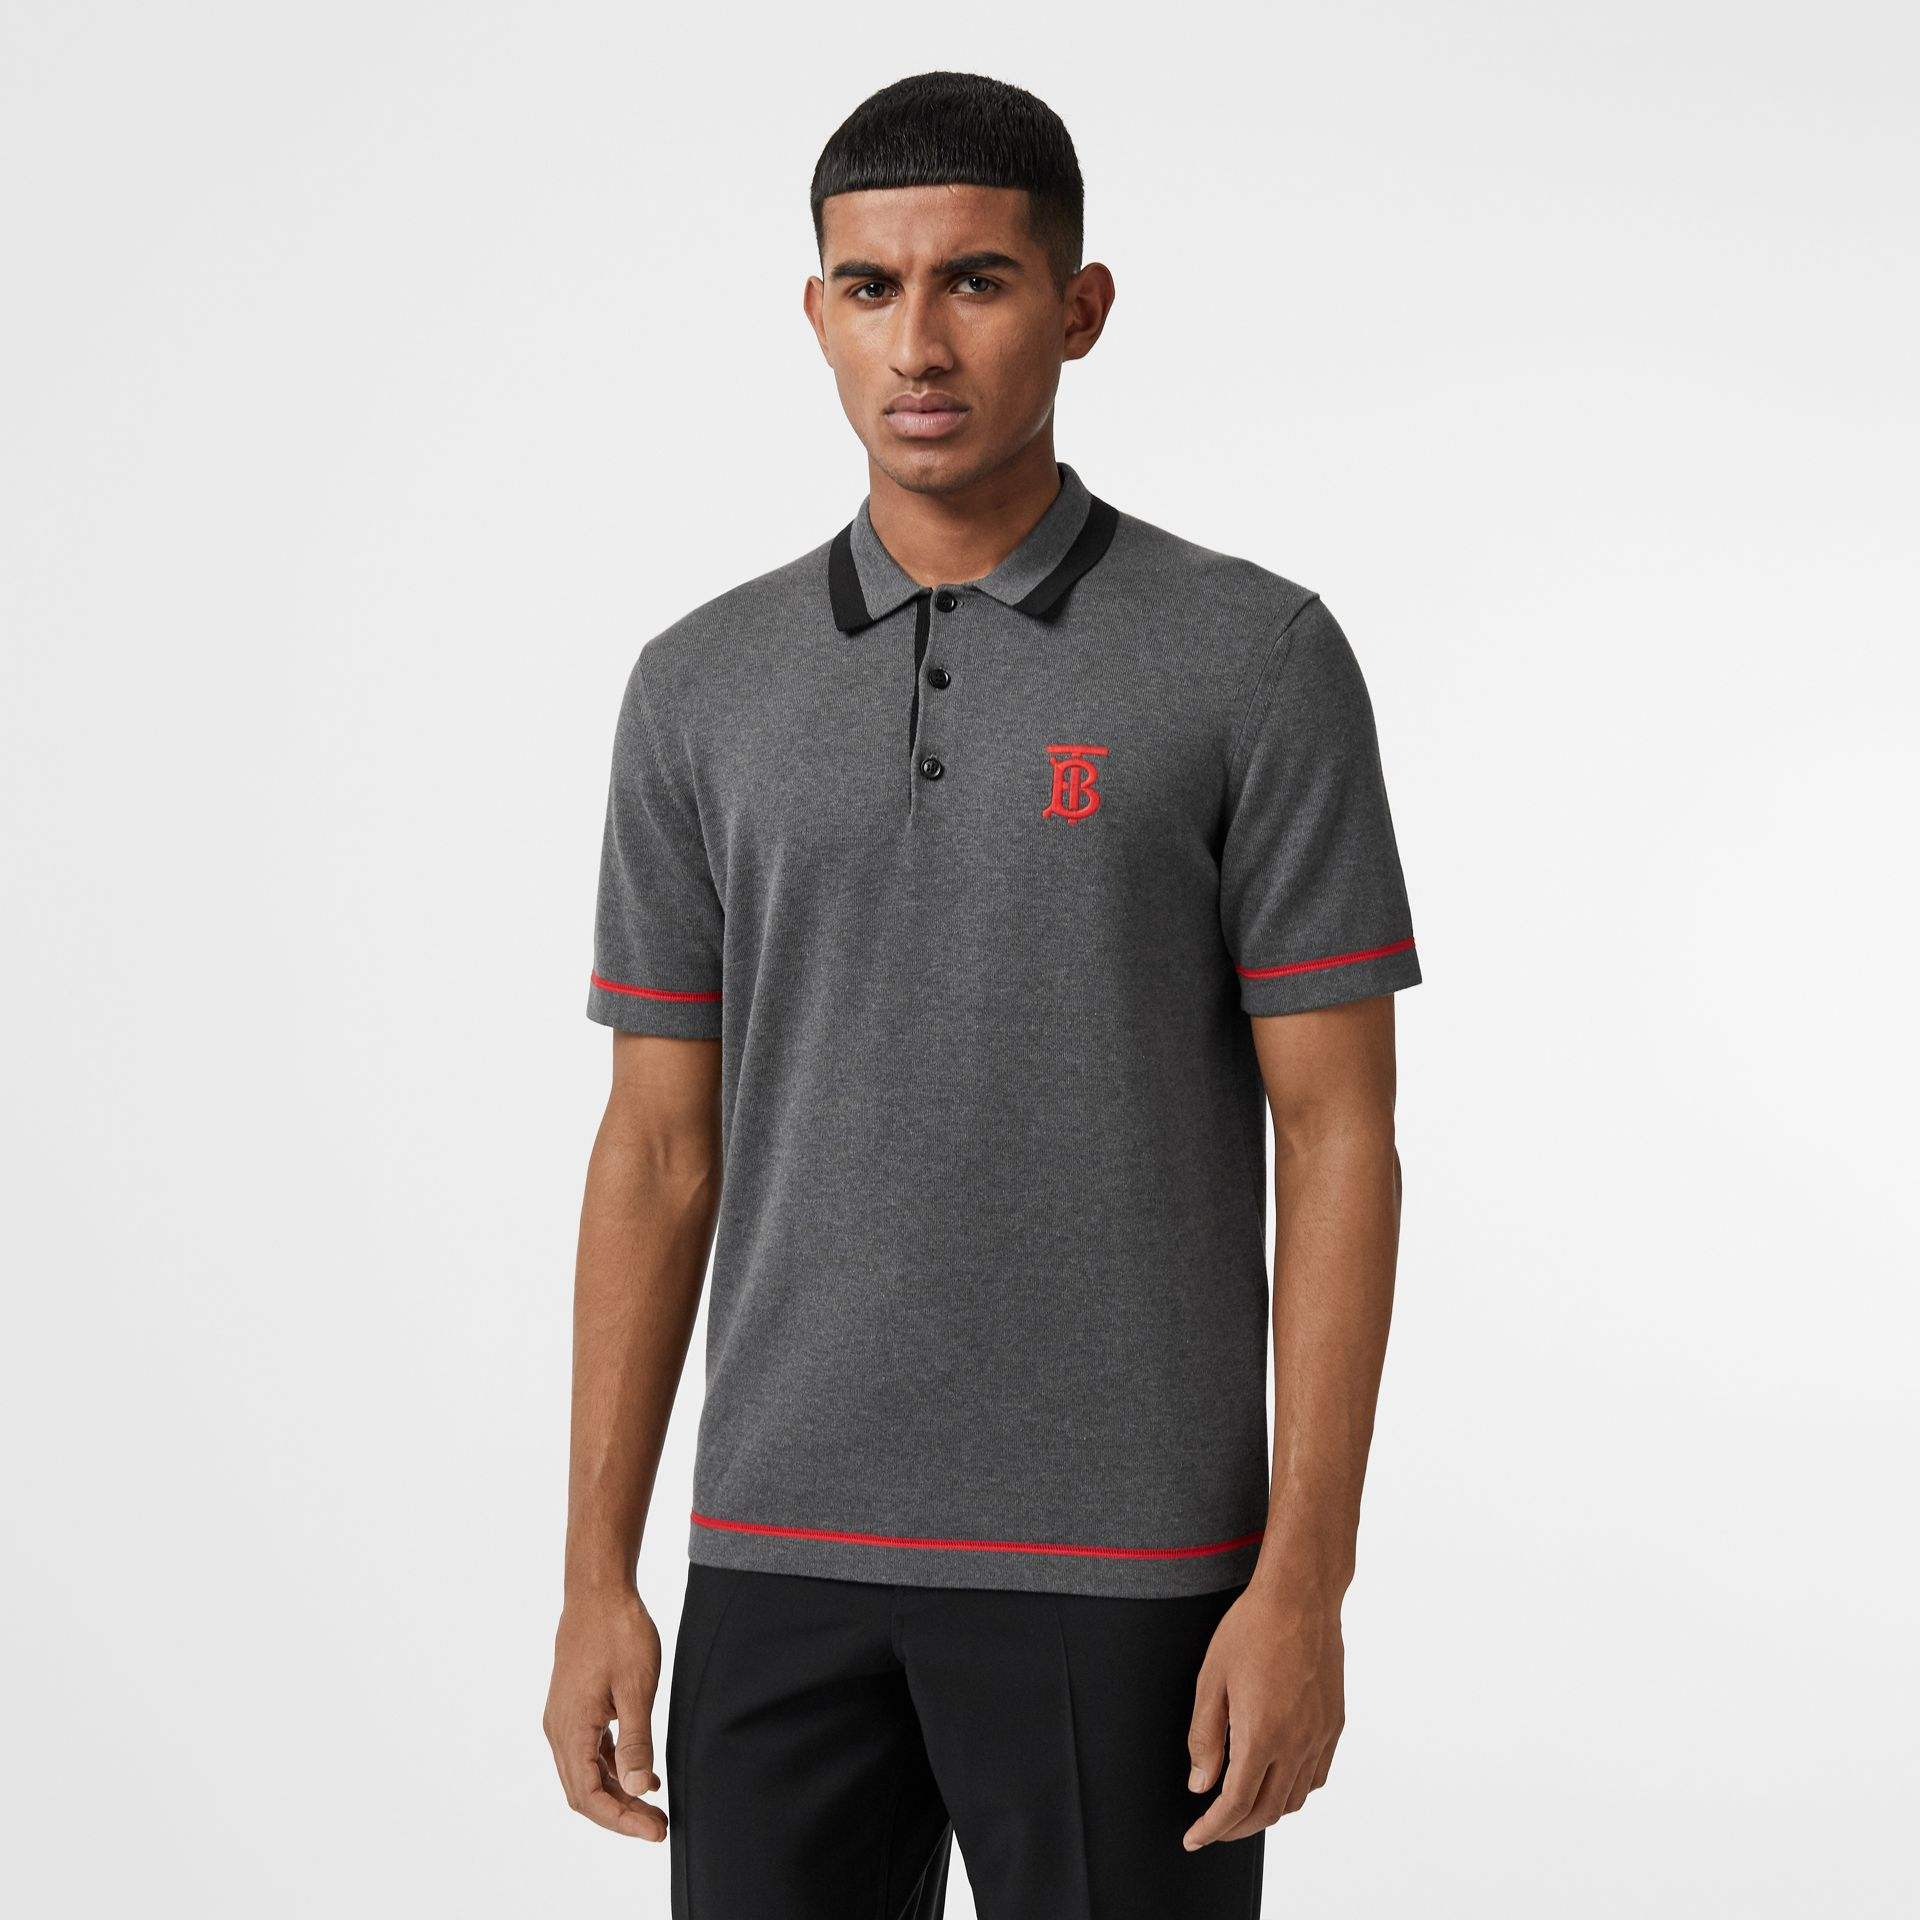 Monogram Motif Tipped Cotton Polo Shirt in Dark Grey Melange - Men | Burberry - gallery image 4